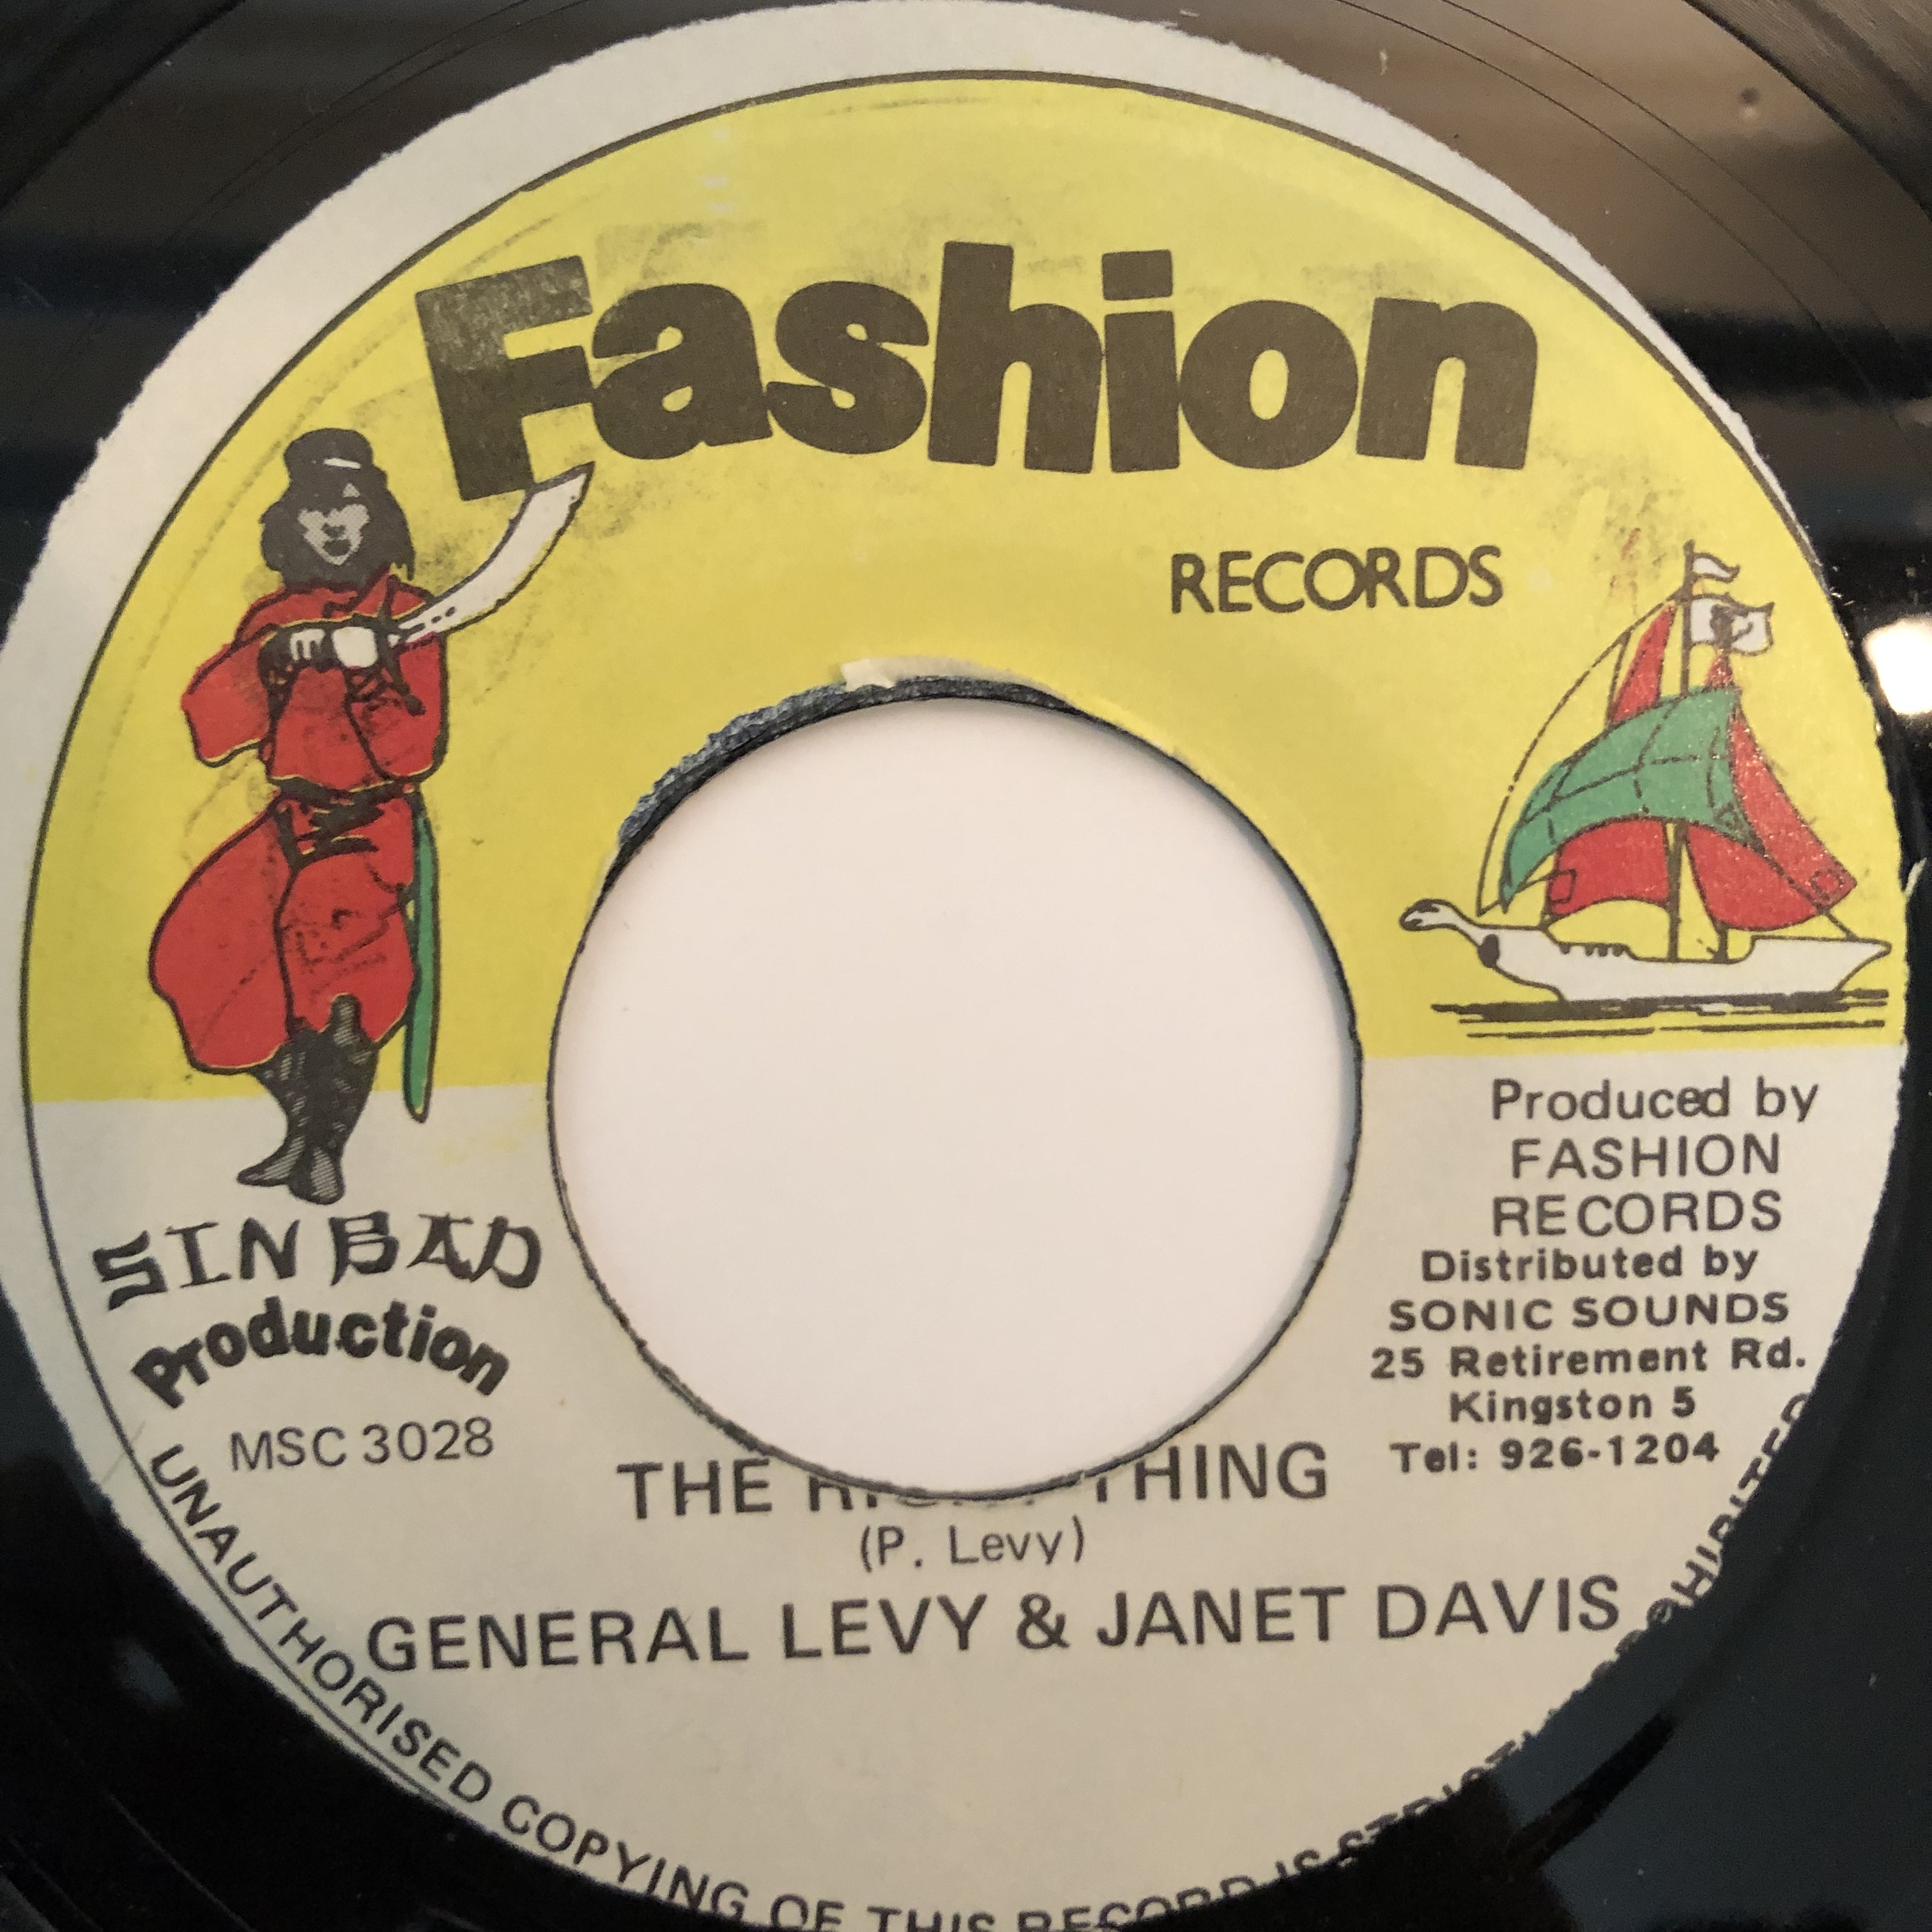 General Levy, Janet Davis - The Right Thing【7-20321】